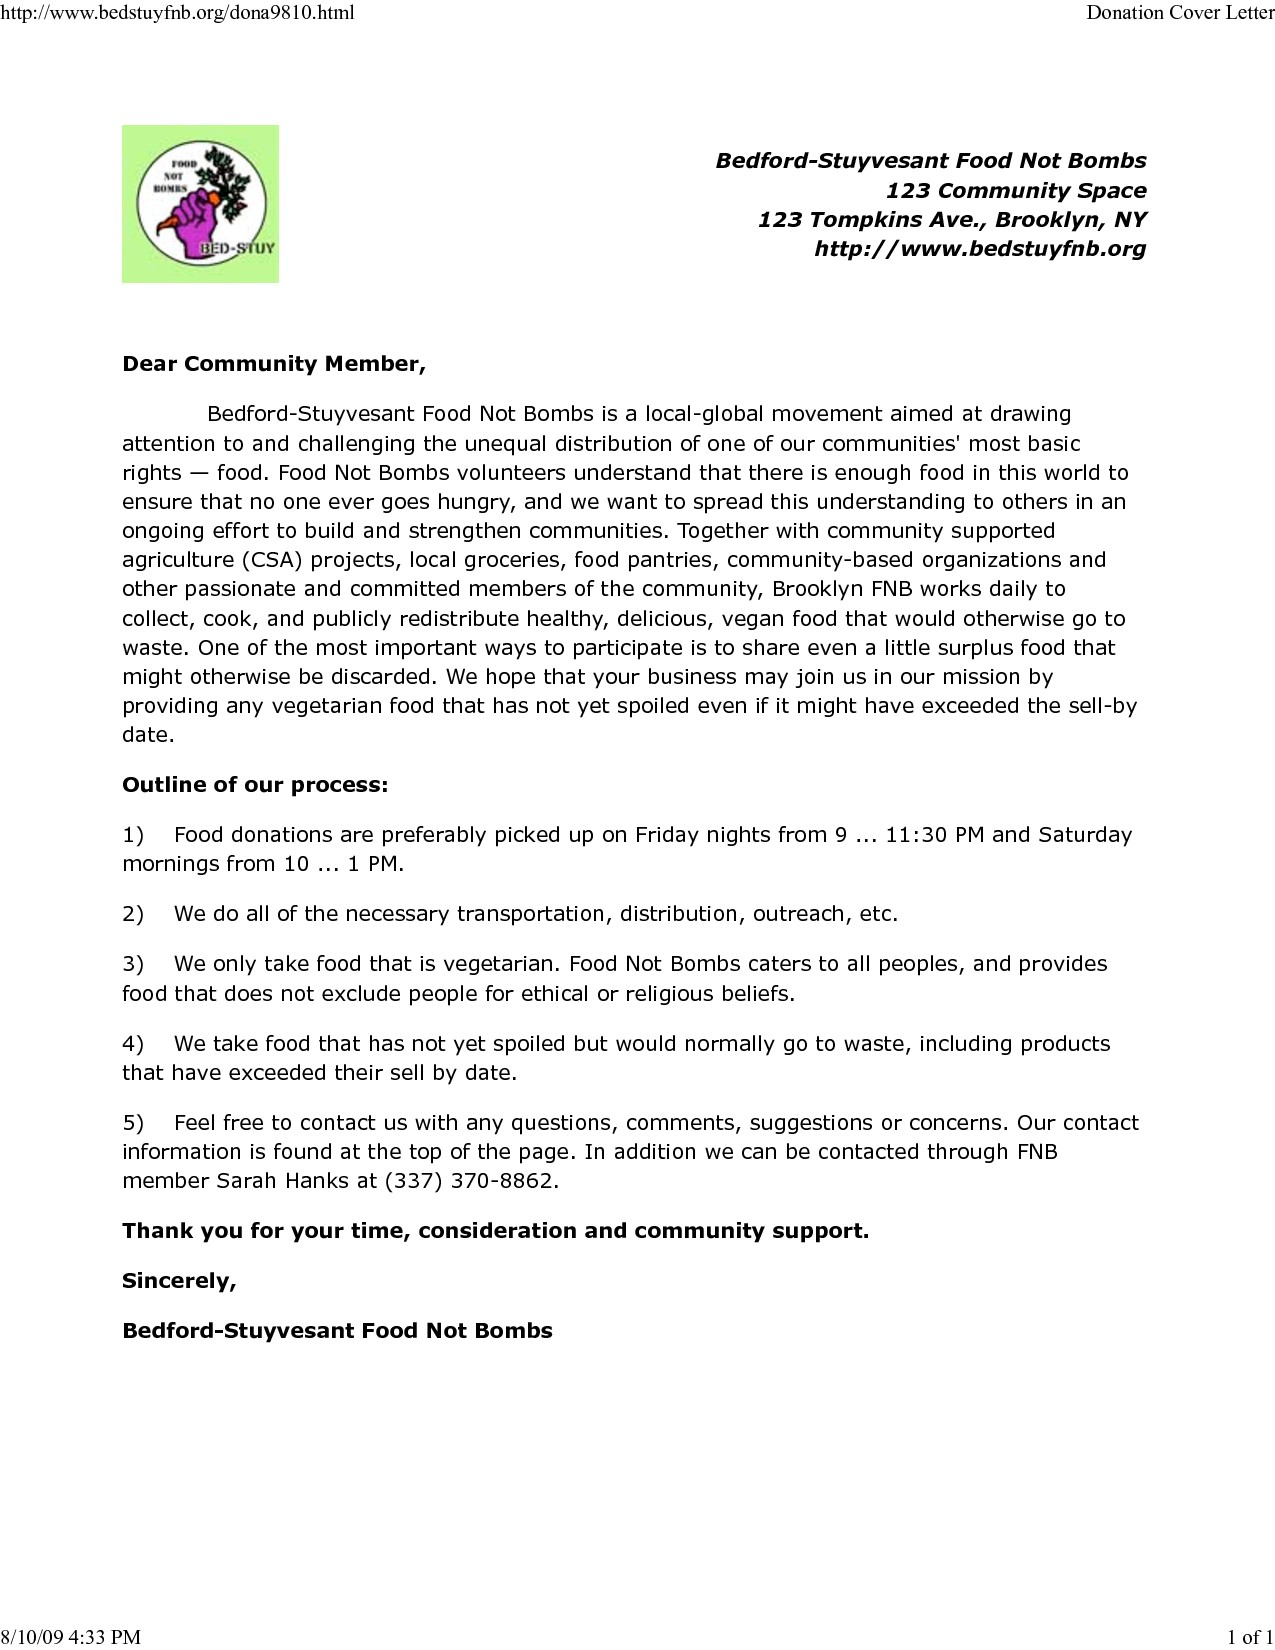 Food Donation Letter Template - Sample Food Donation Letter Acurnamedia